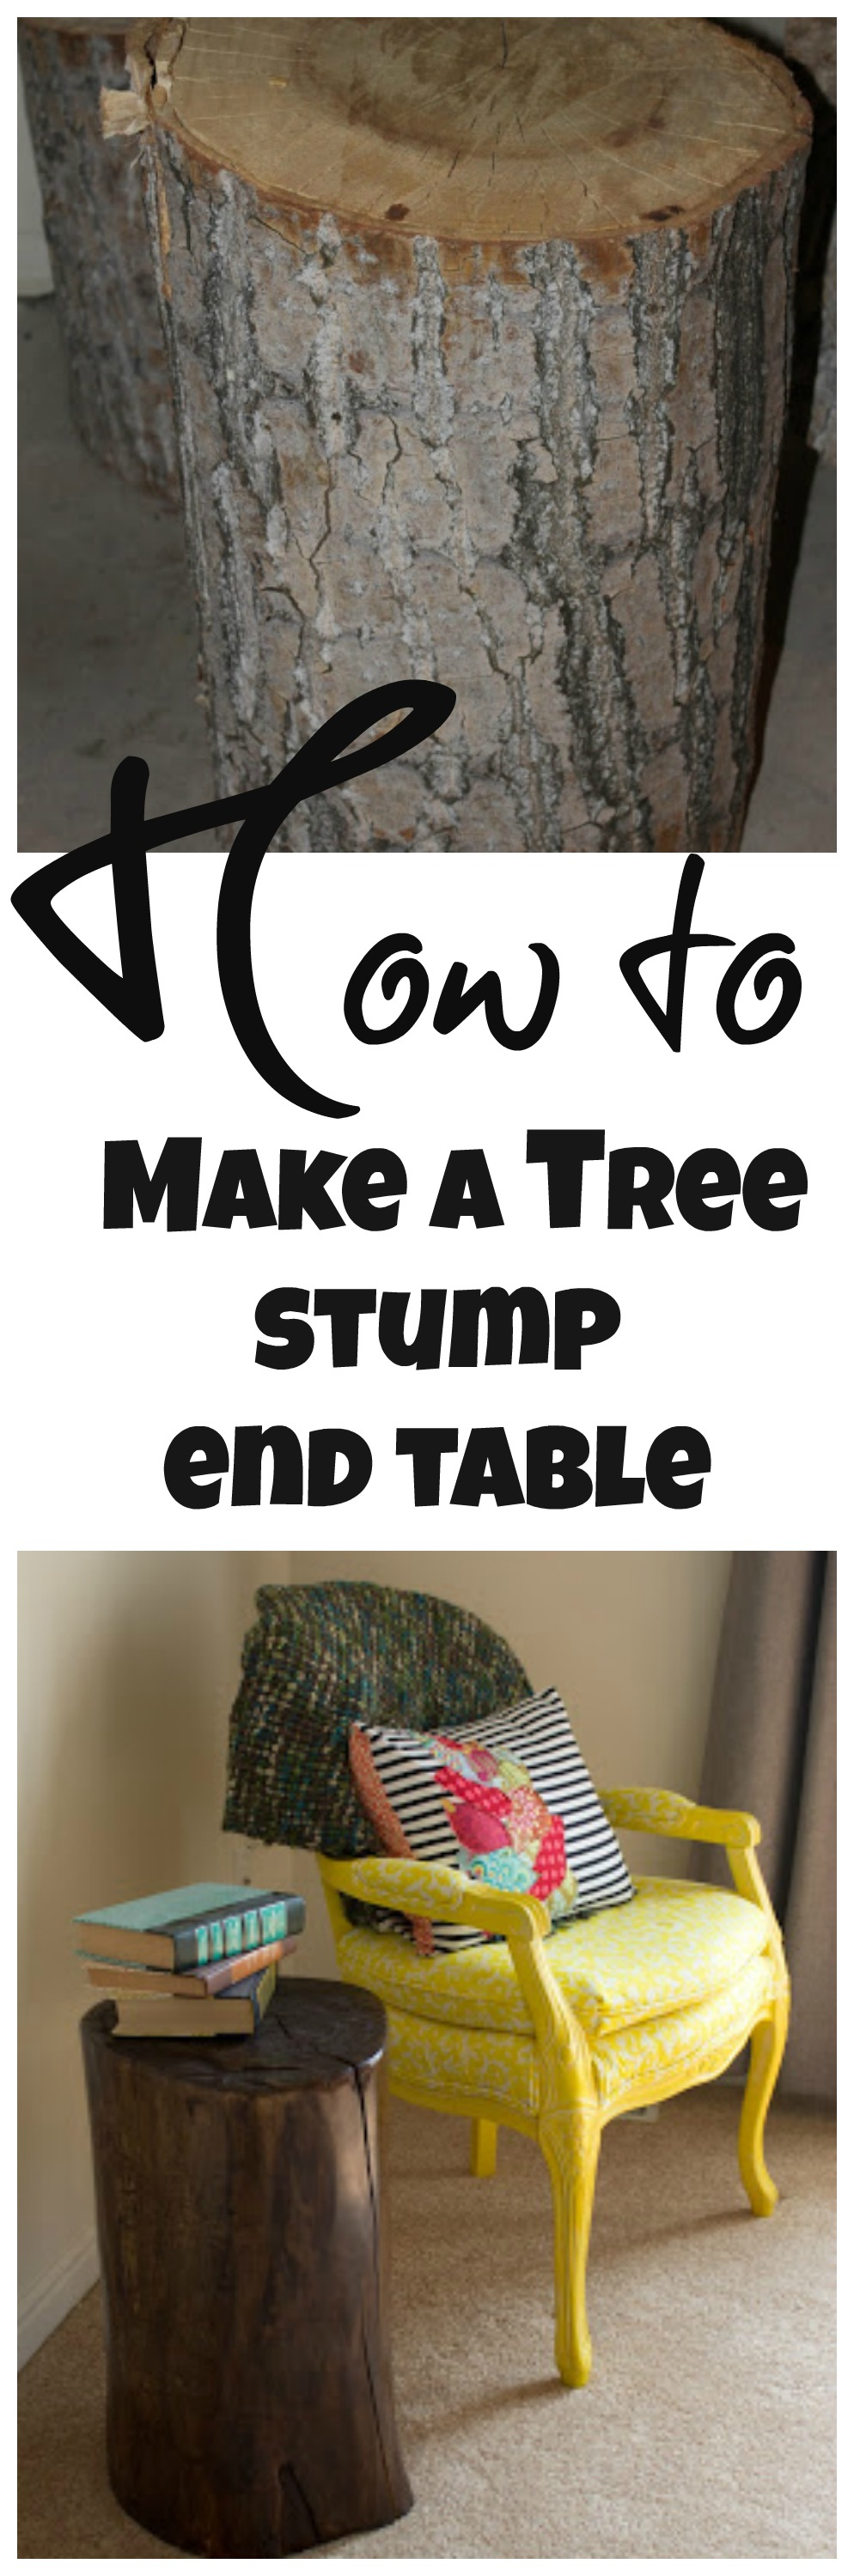 How to make an end table out of a tree stump